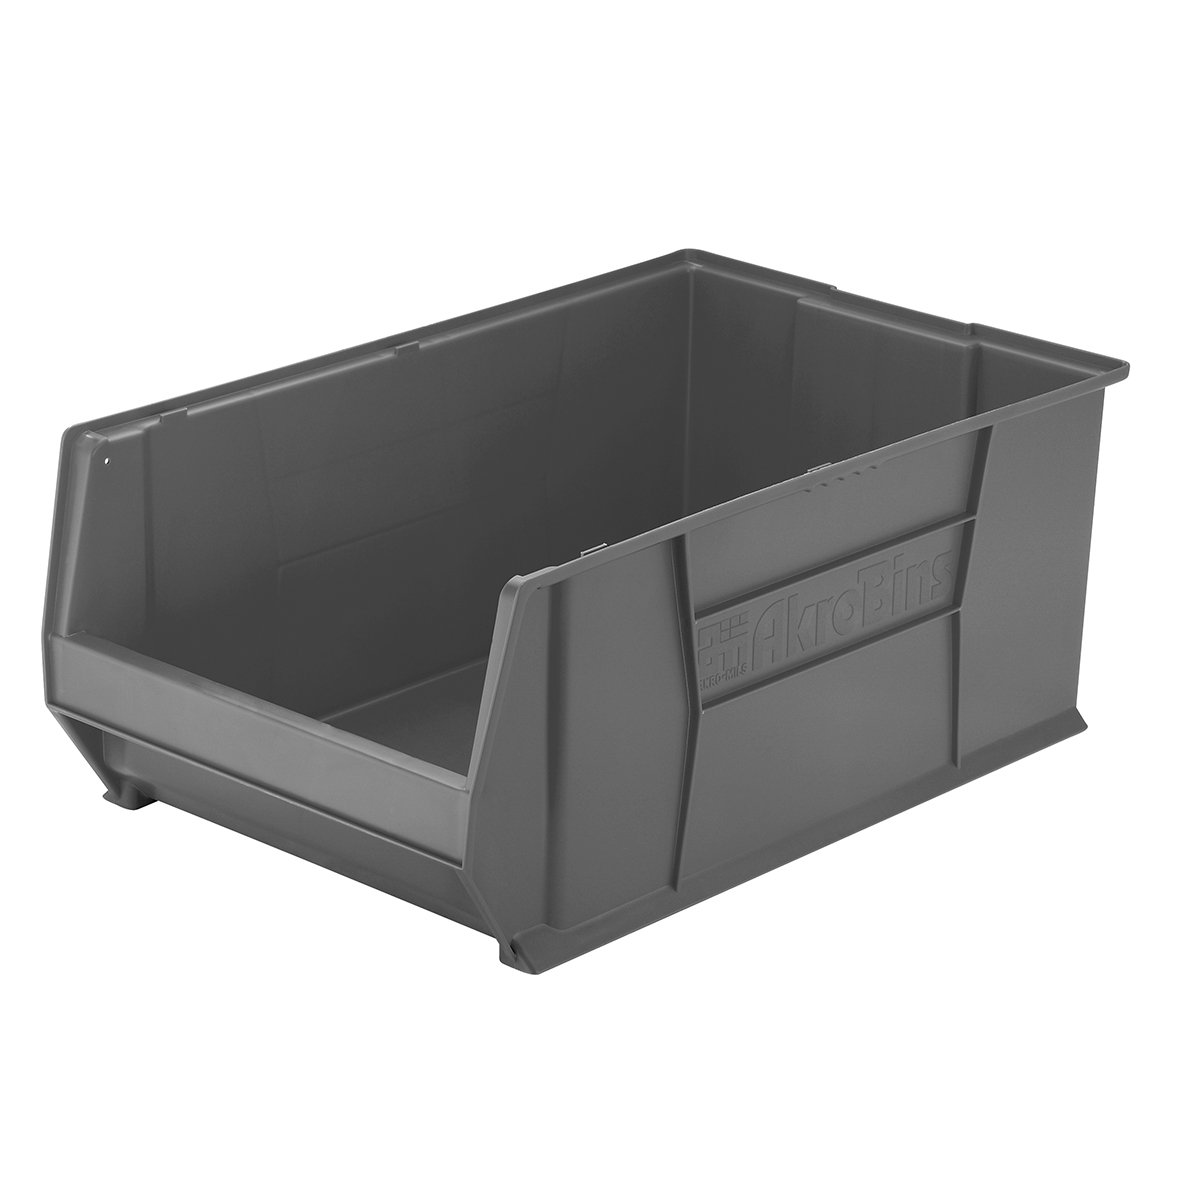 Akro-Mils 30290 Plastic Stacking Storage Akro Bin, 29-Inch Diameter by 18-Inch Width by 12-Inch Height, Grey